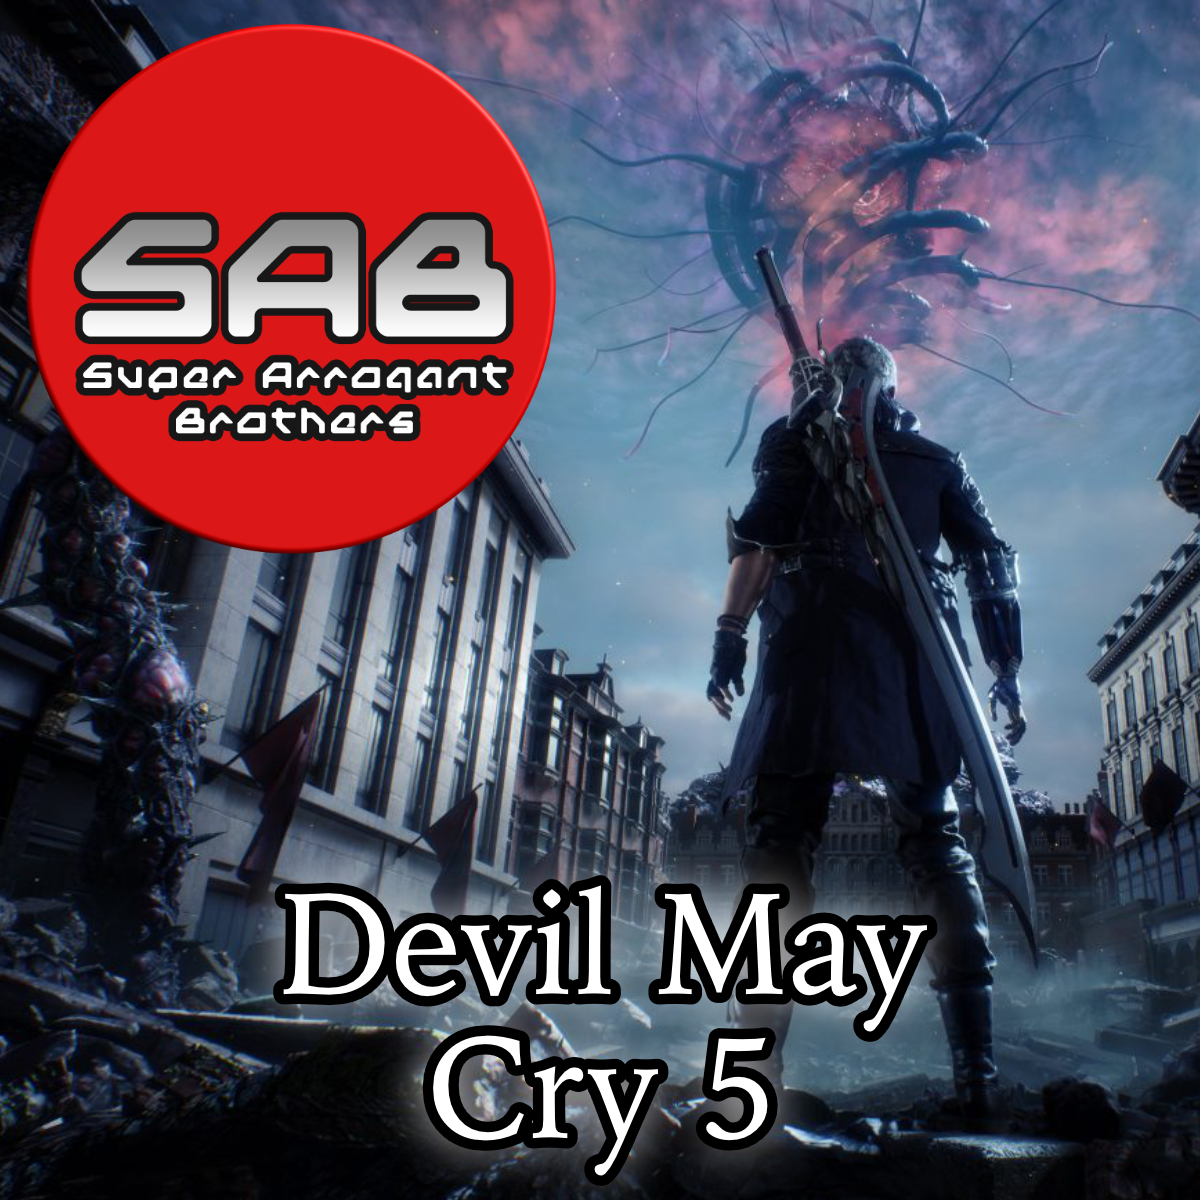 Super Arrogant Bros: Devil May Cry 5